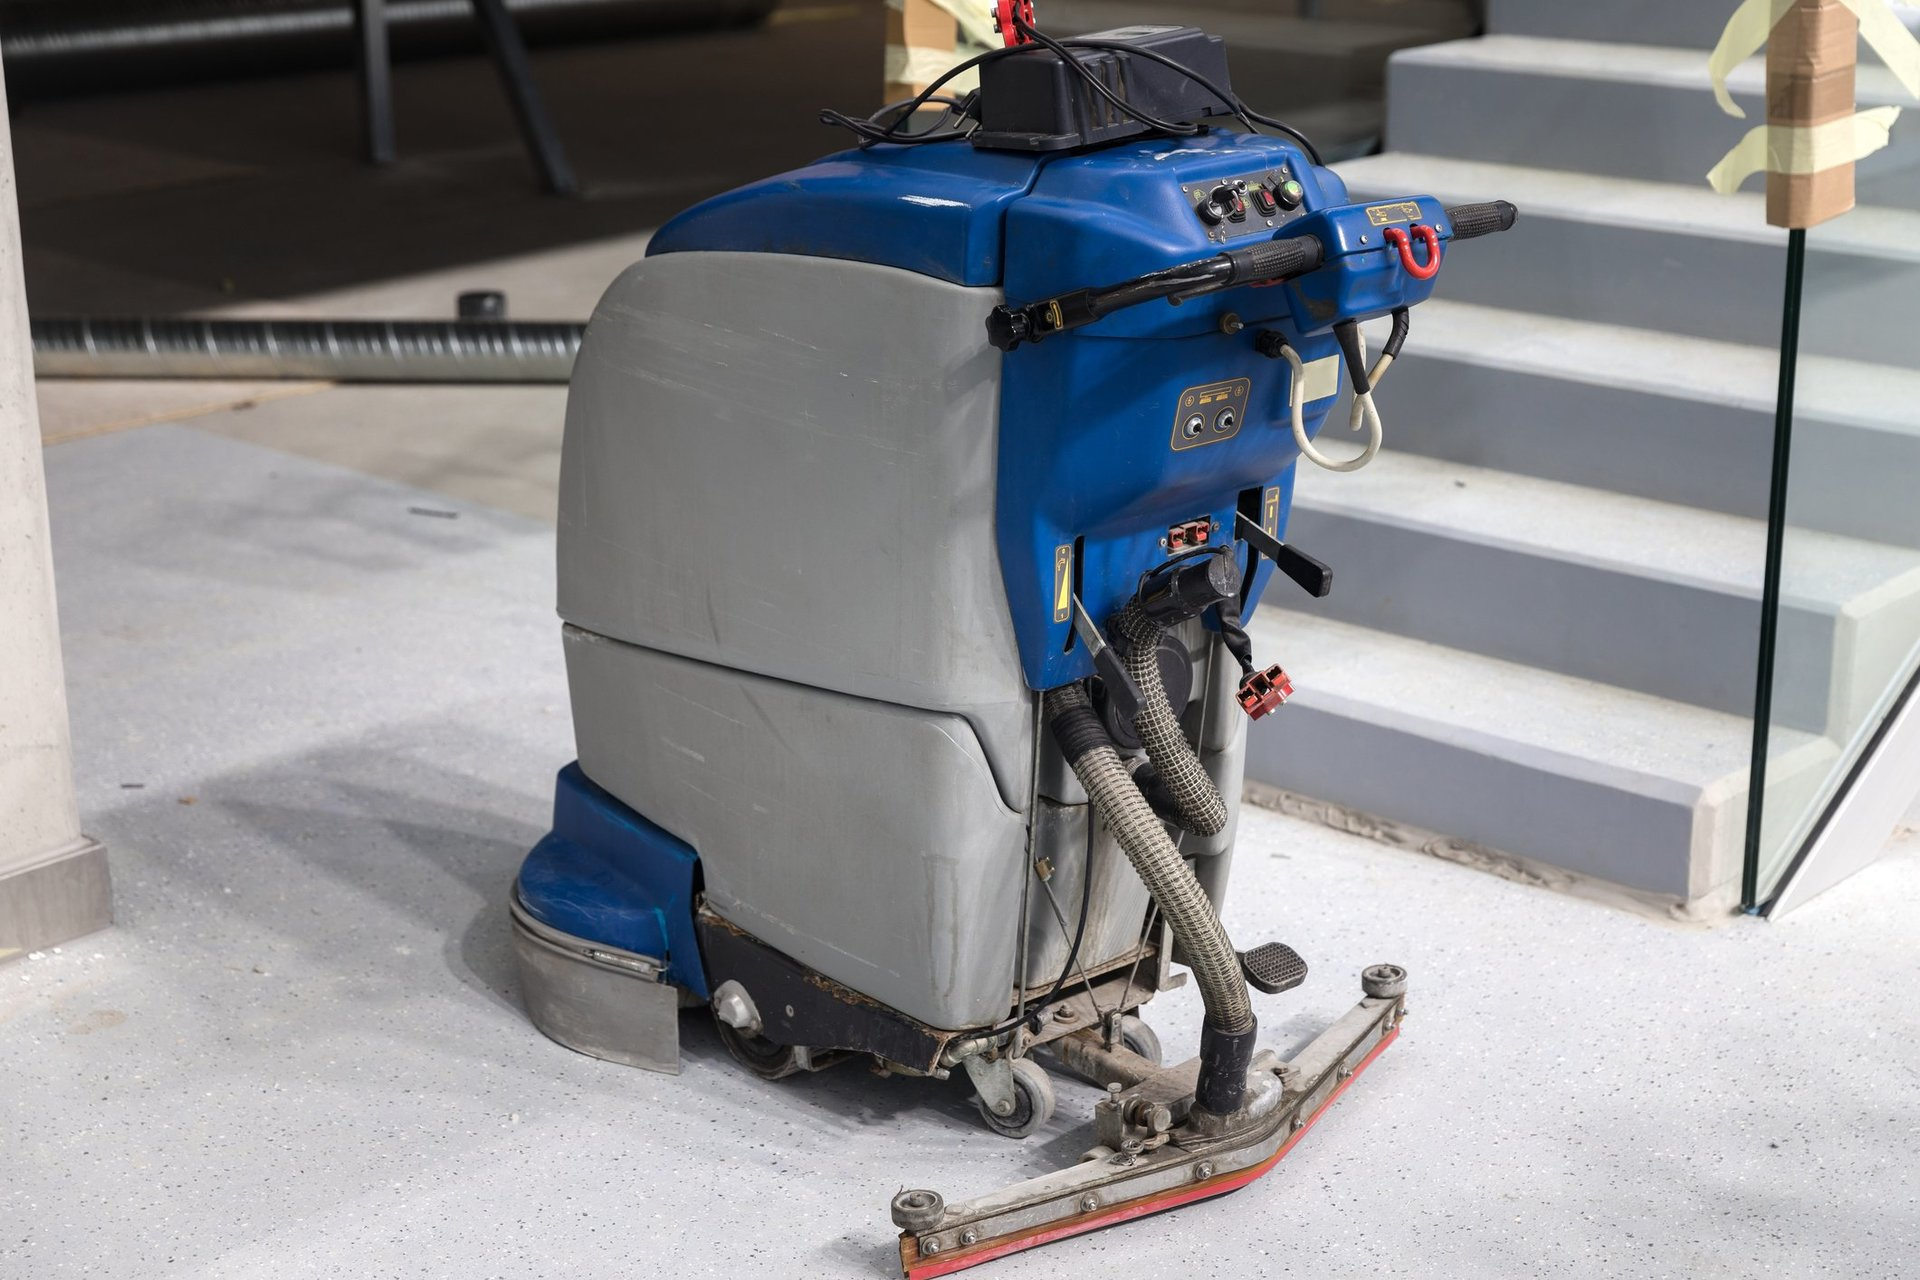 Carpet Amp Floor Cleaning Services College Station Amp Bryan Tx